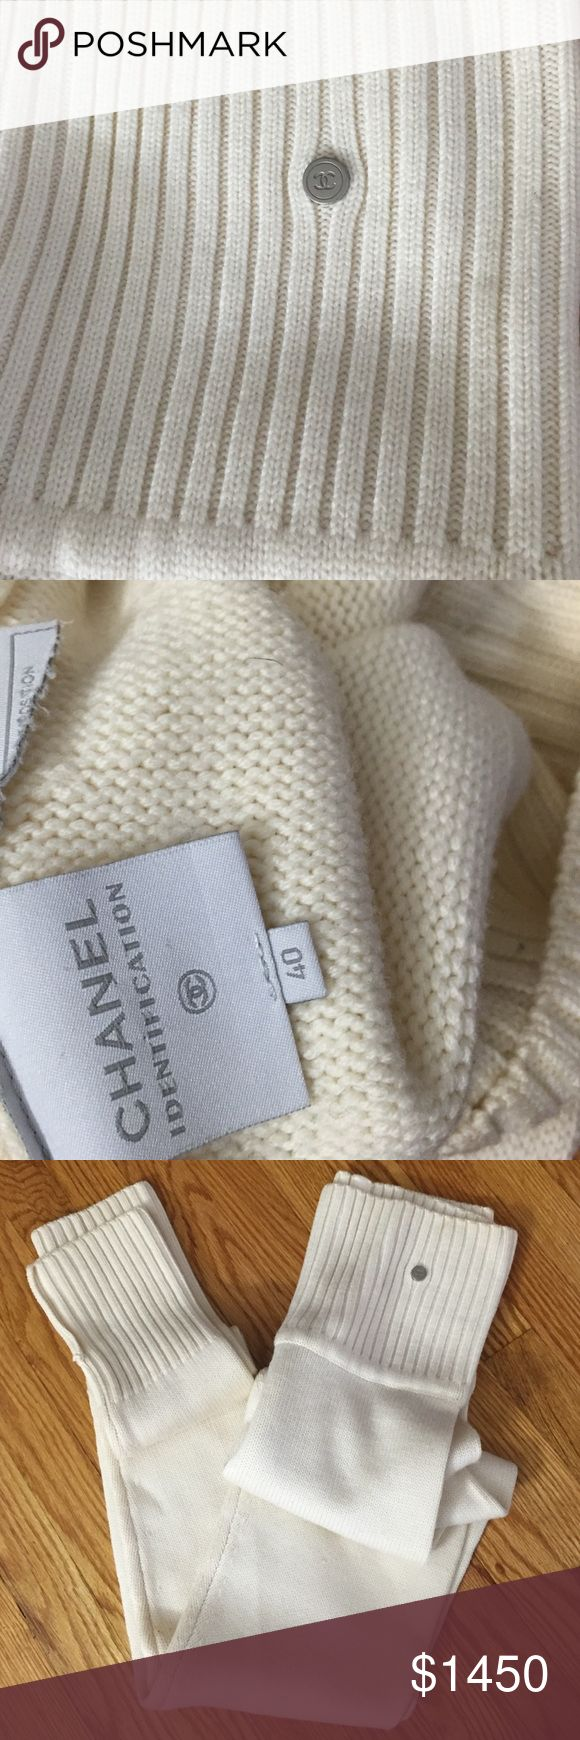 CHANEL SWEATER LEGGINGS Authentic Chanel Sweater pants(leggings)/ Rare Find/Vintage 1990s/ Cream Colored/ Versatile waistline(can be worn high waisted or mid rise) / Great stretch/ MINT CONDITION/ CHANEL Pants Leggings